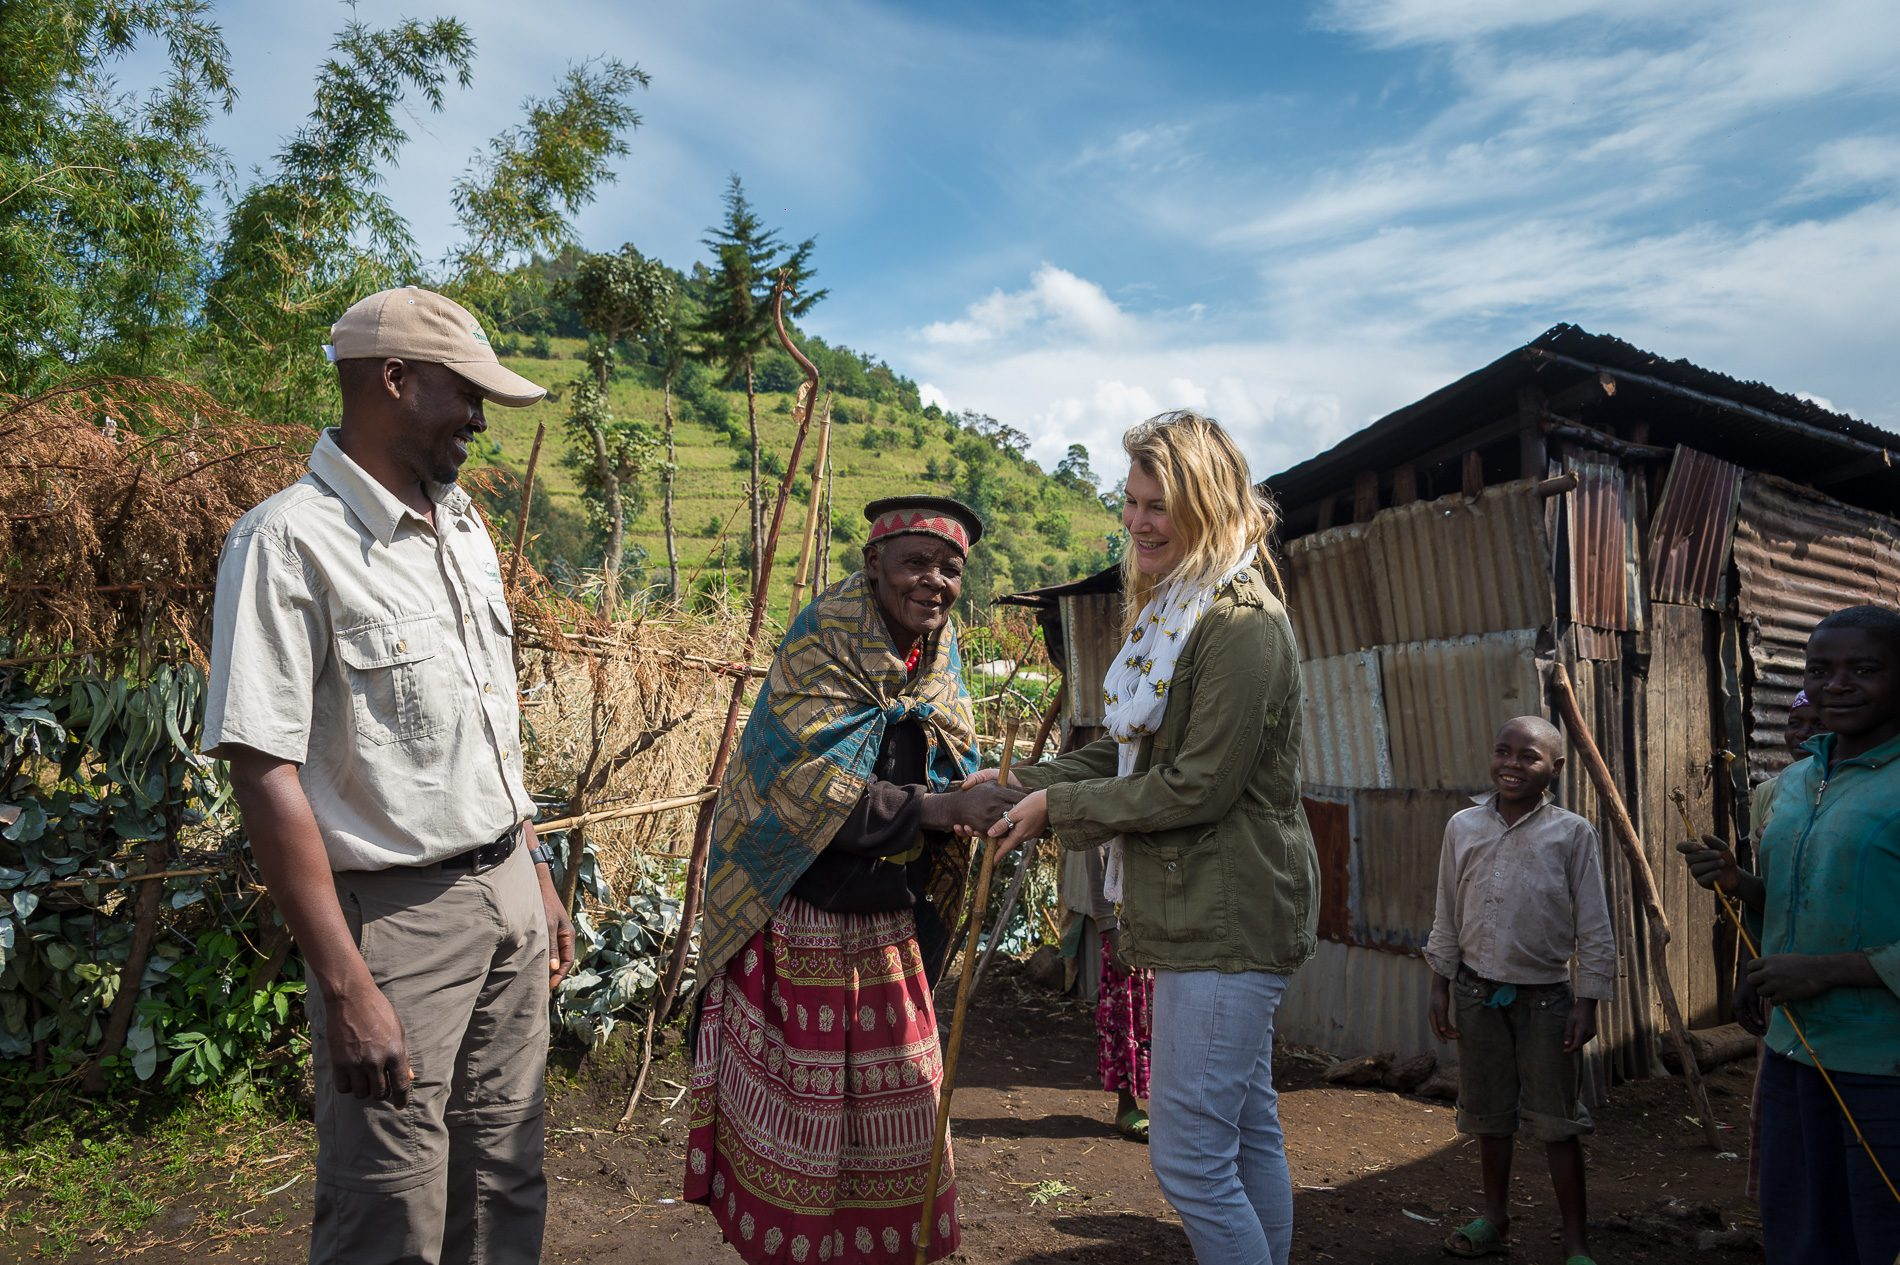 tourist visits Rwandan village with guide